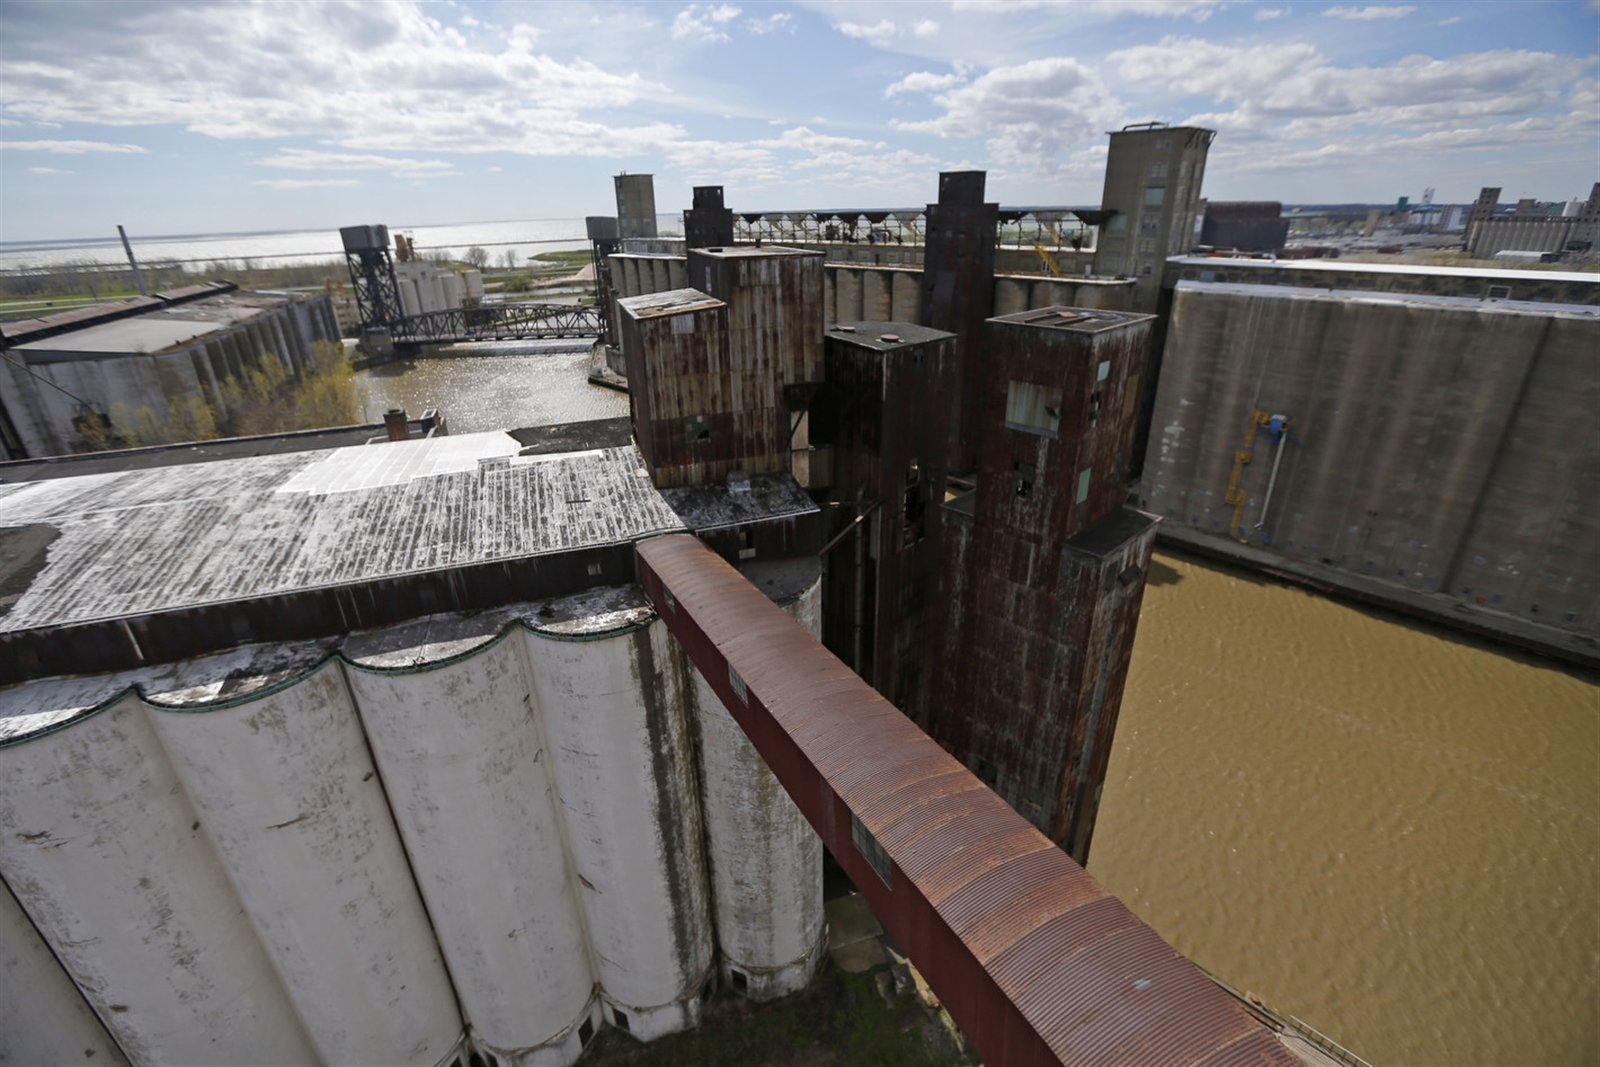 Backers want historic grain elevators turned into national